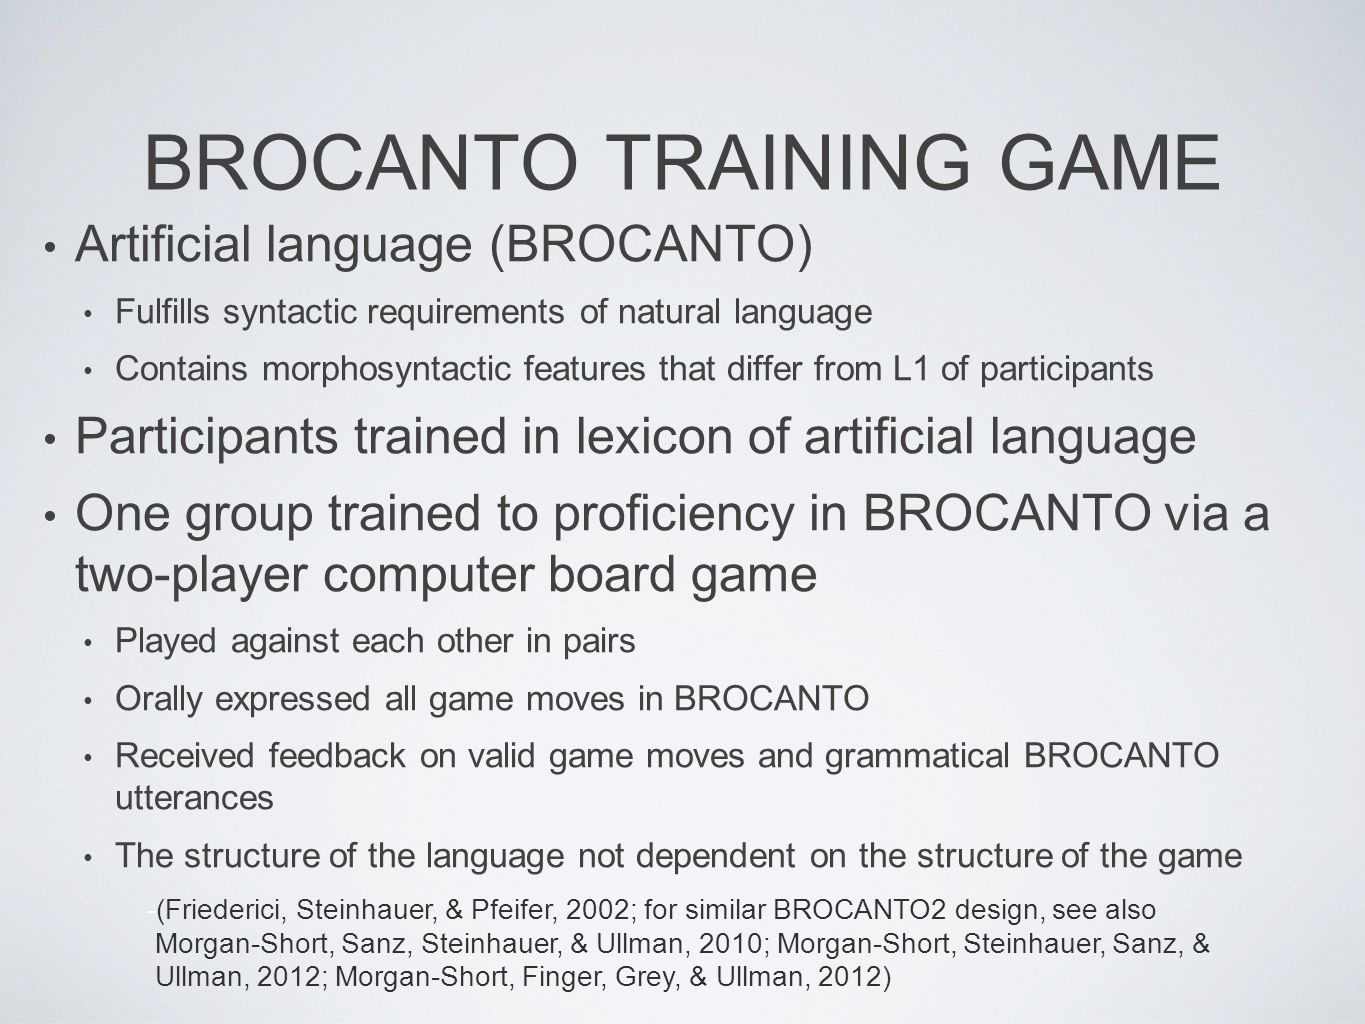 brocanto training game